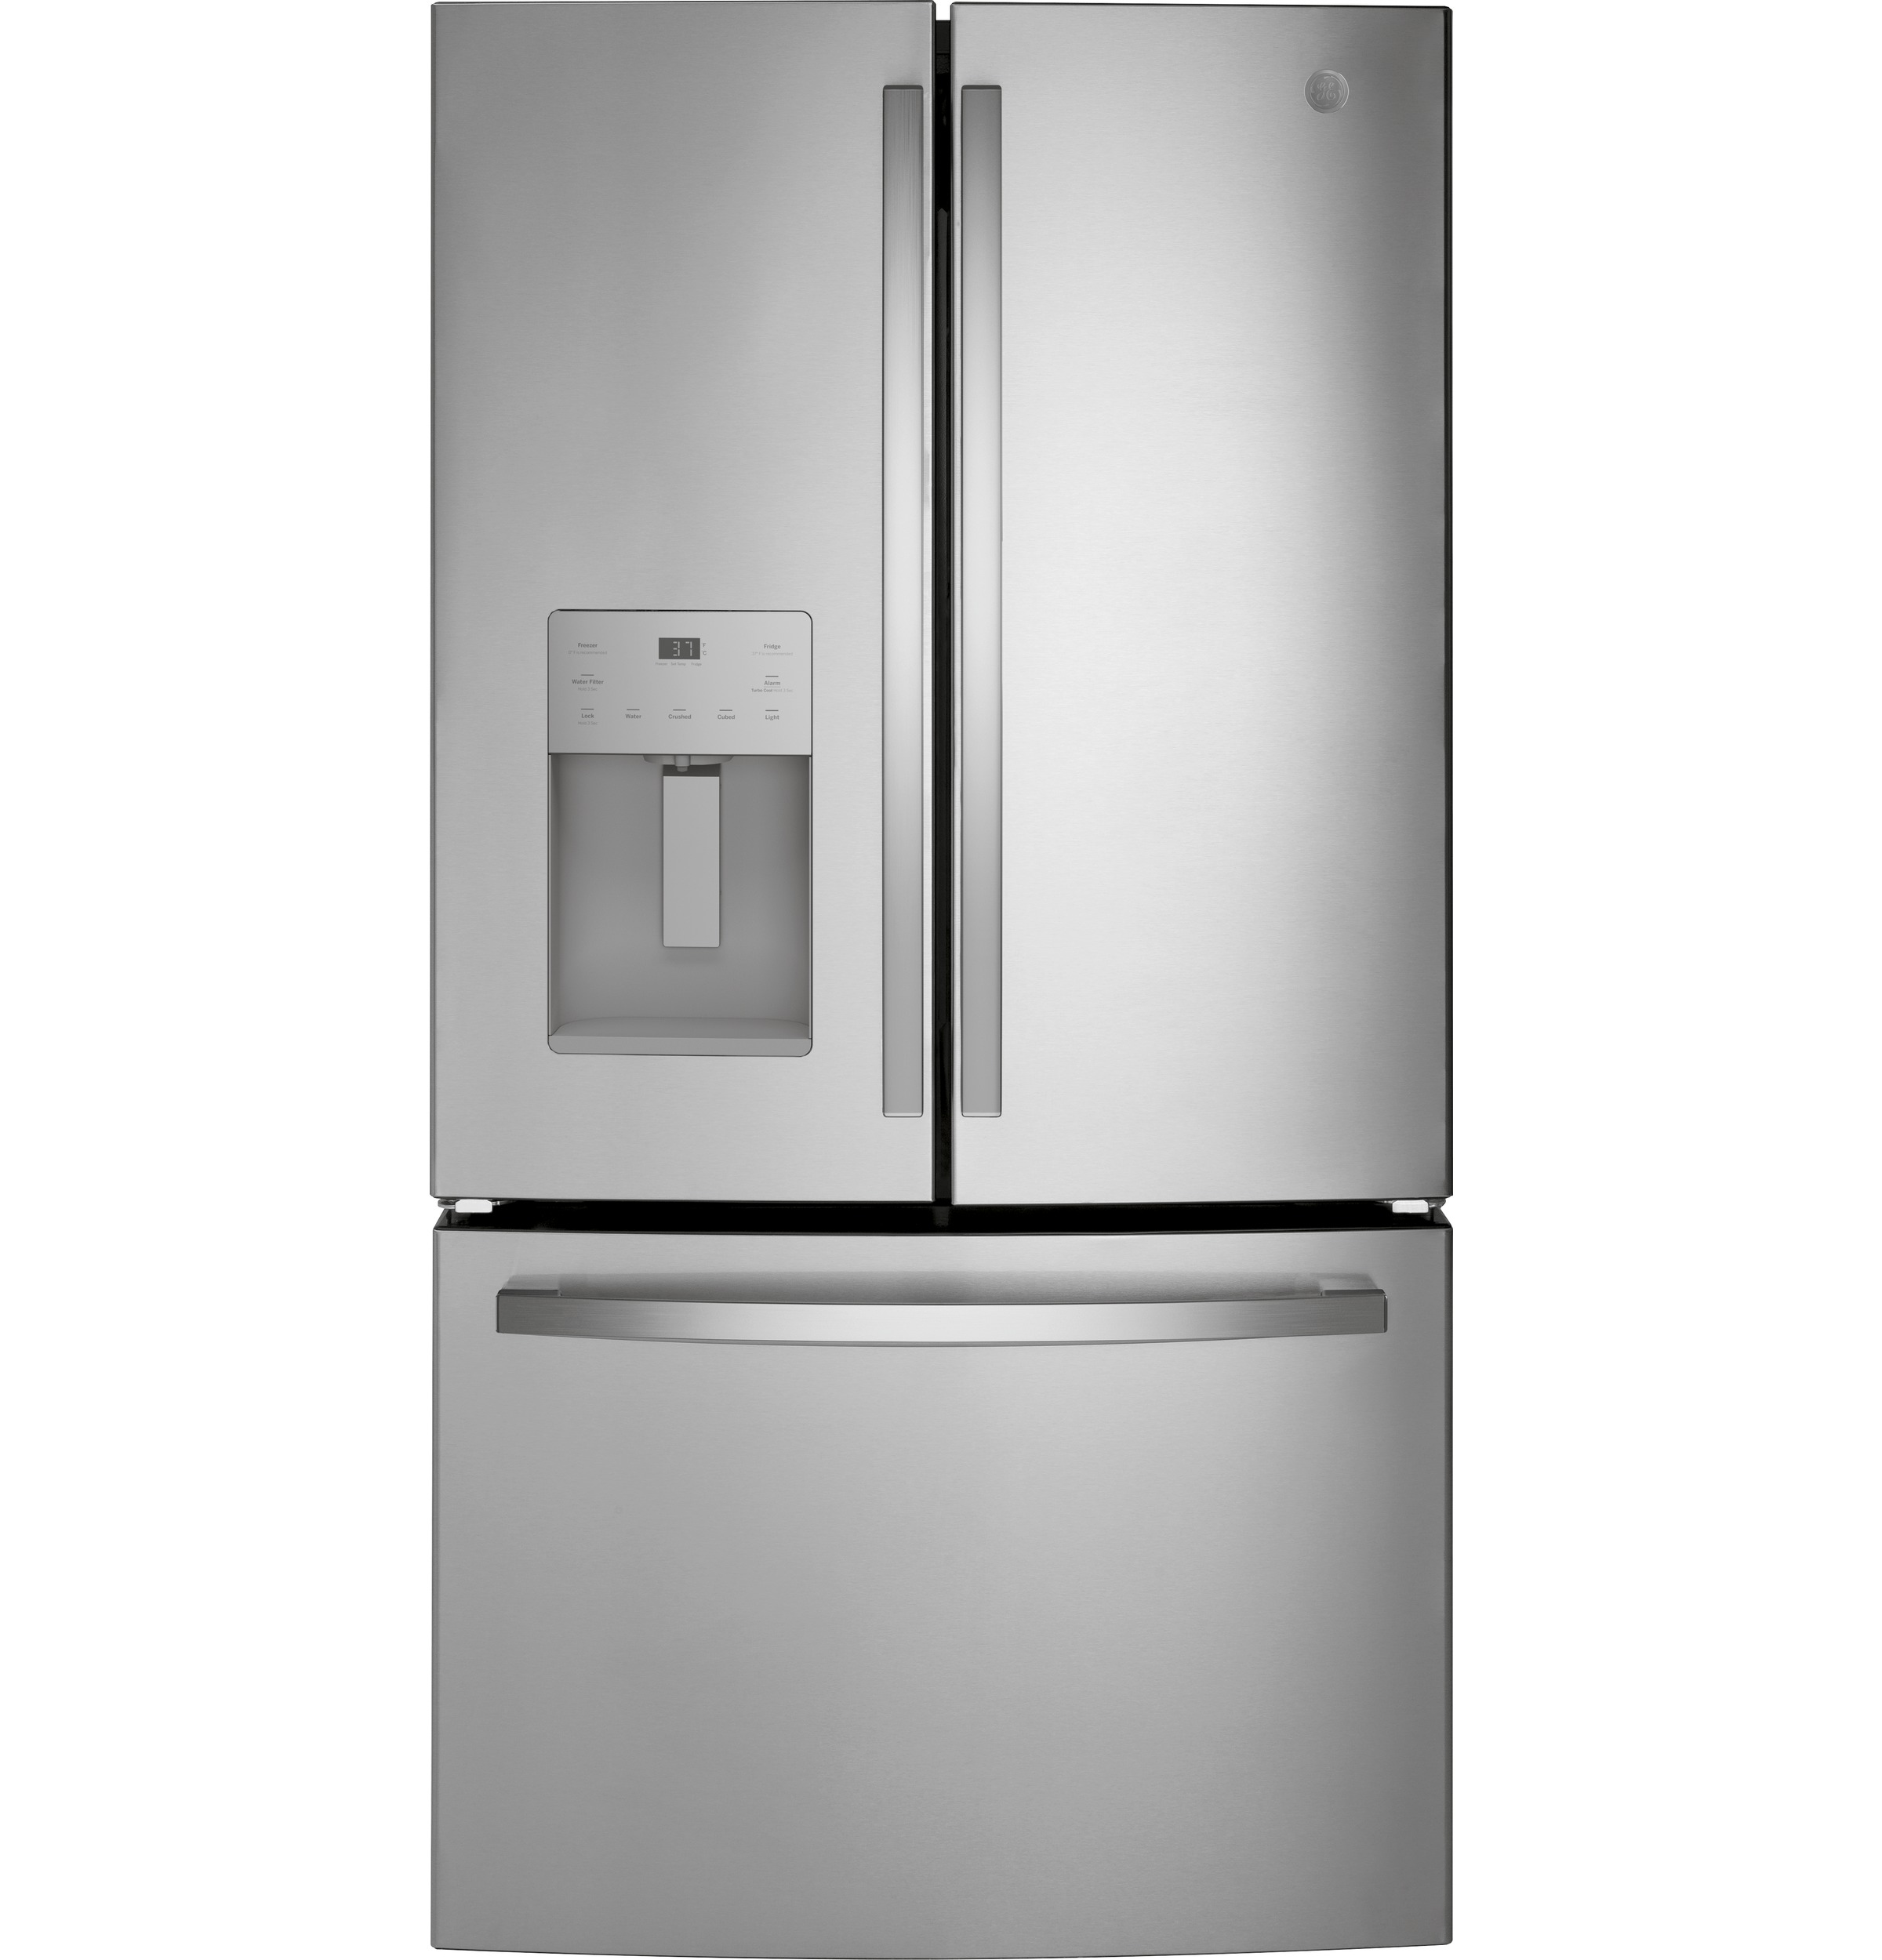 GE GE® ENERGY STAR® 25.6 Cu. Ft. Fingerprint Resistant French-Door Refrigerator